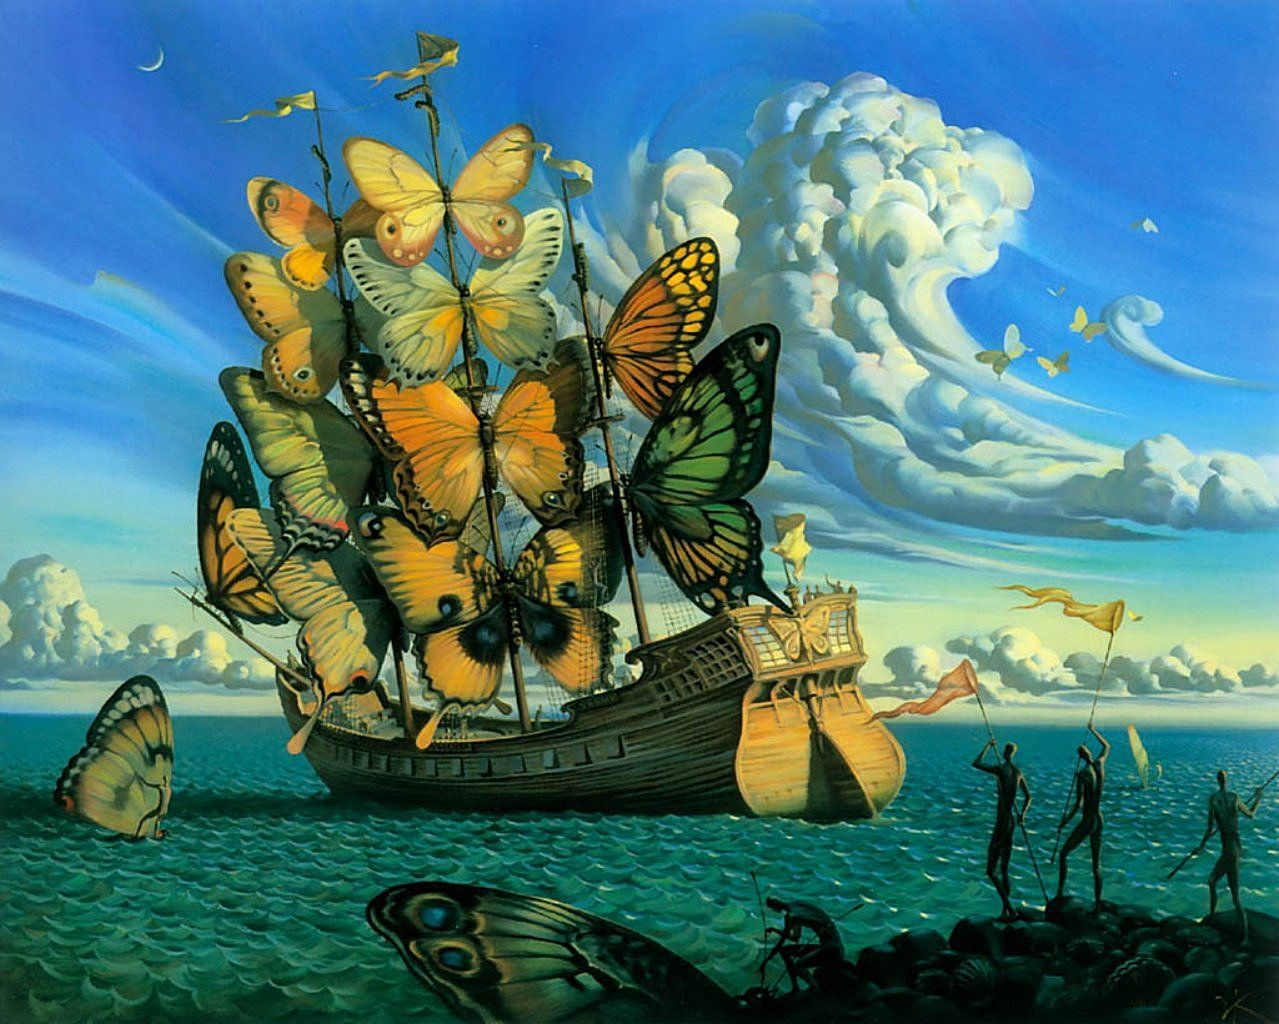 The Unforgettable Surreal Art of Vladimir Kush - Ship of the Winged Butterfly Sails